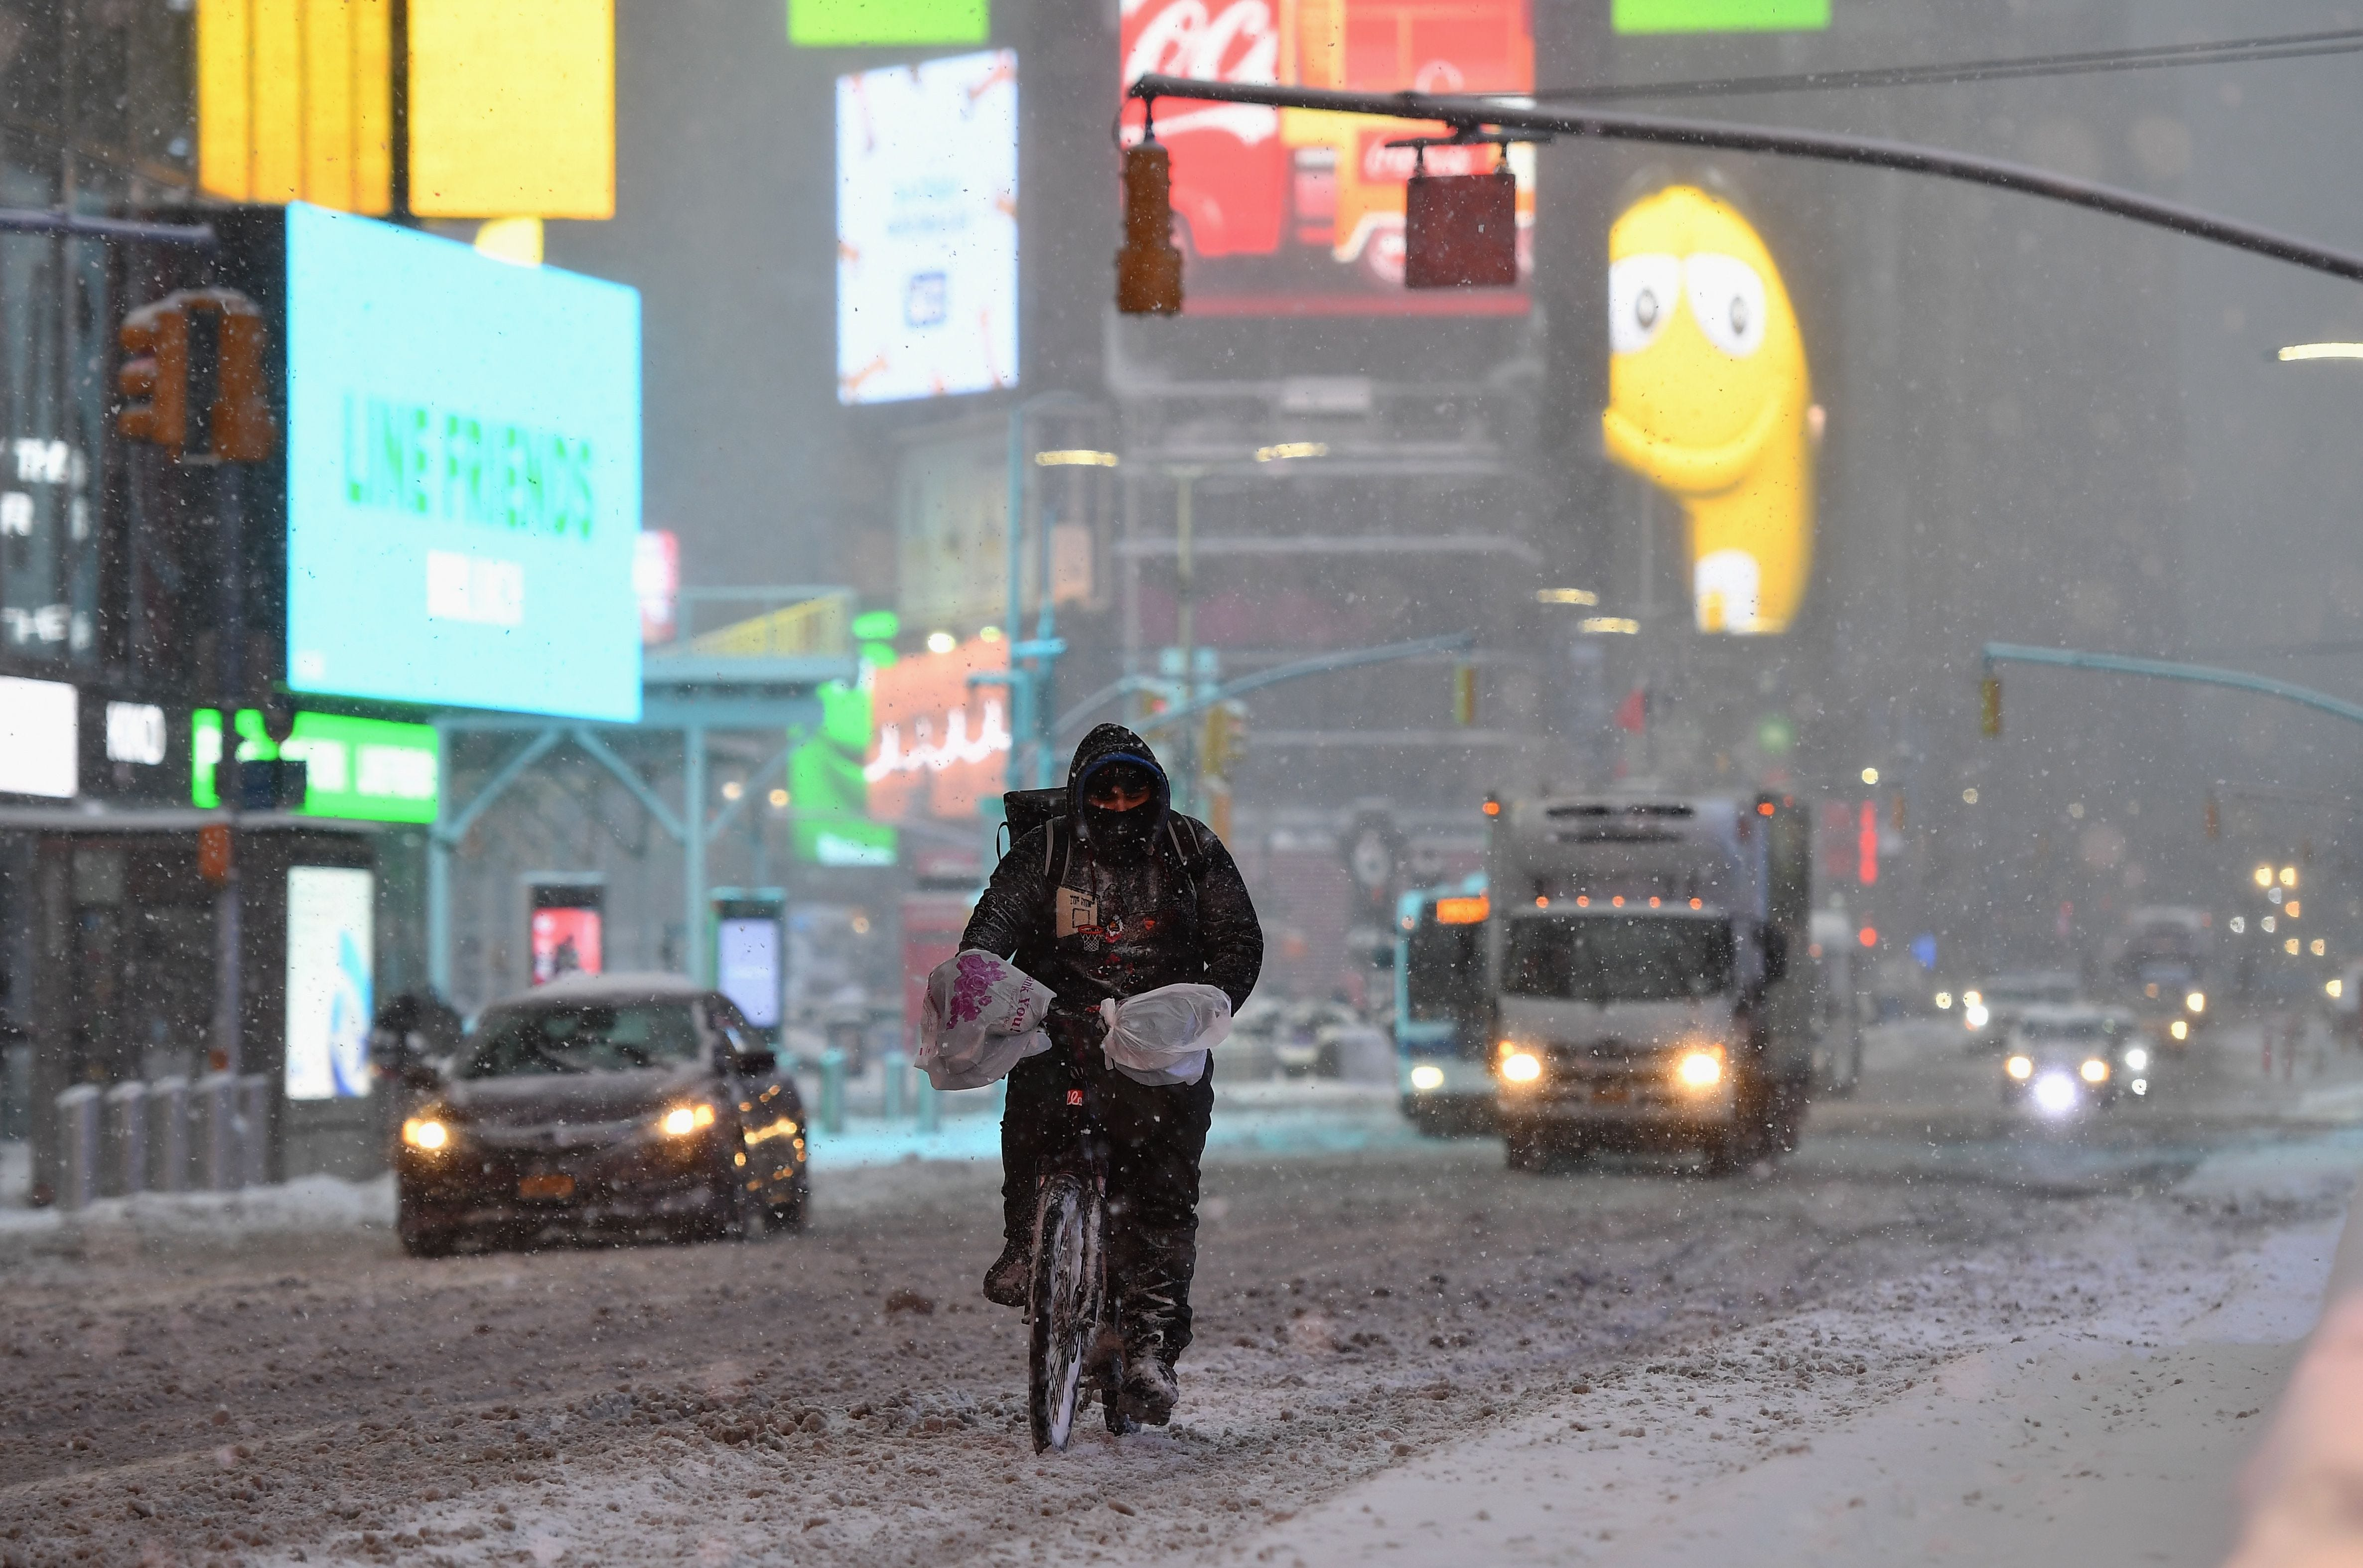 Winter storm: LaGuardia Airport closes, 1,600+ flights canceled throughout East Coast